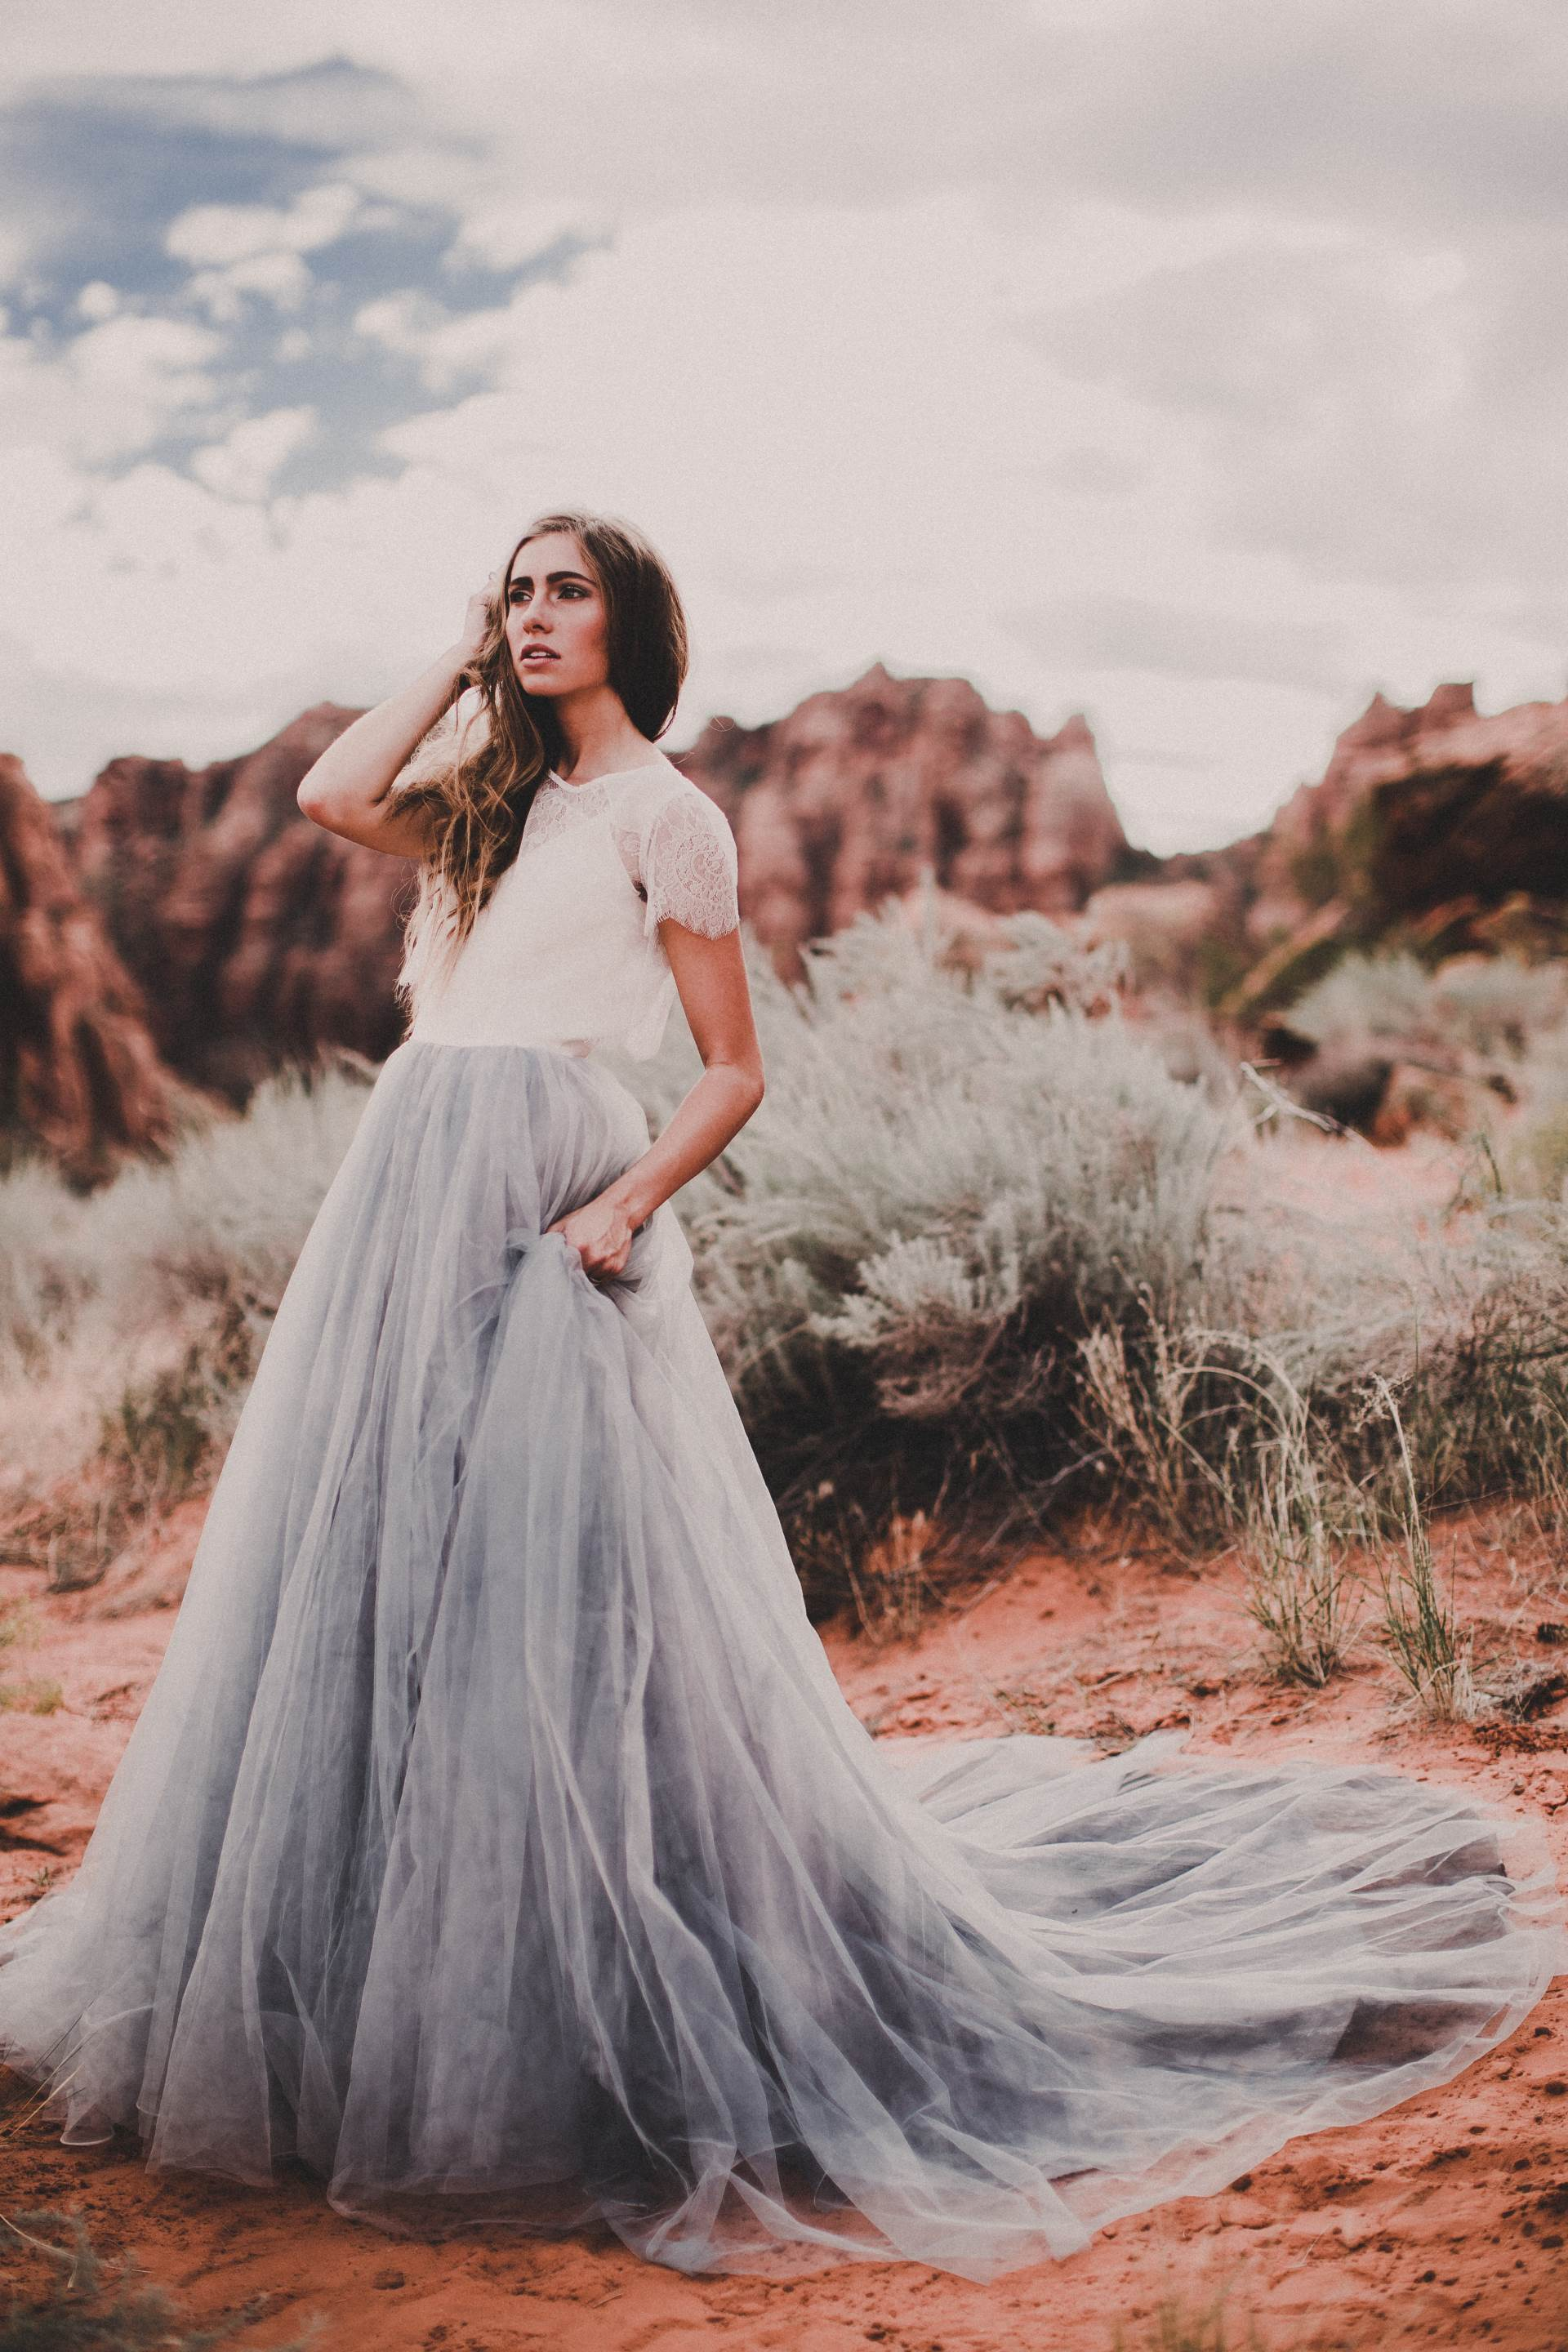 Mae by Chantel Lauren, blue wedding dress sold through Rock The Frock bridal boutique